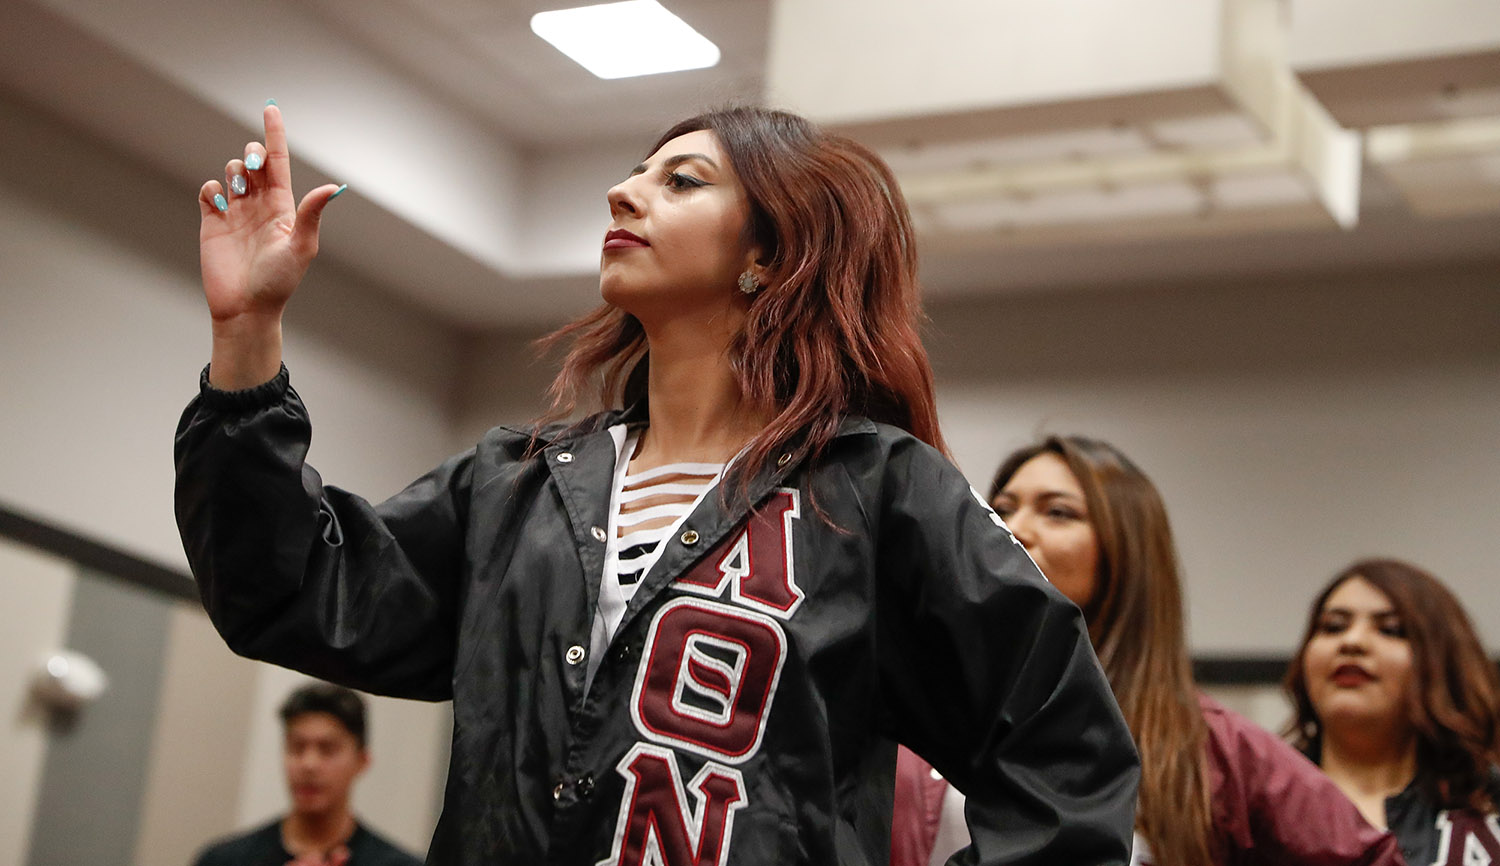 The Lambda Theta Nu sorority is one of three multicultural Greek organizations that will be competing in a stepping/strolling event Saturday evening in the Ponderosa Room at UNK's Nebraskan Student Union. (Photo by Corbey R. Dorsey, UNK Communications)